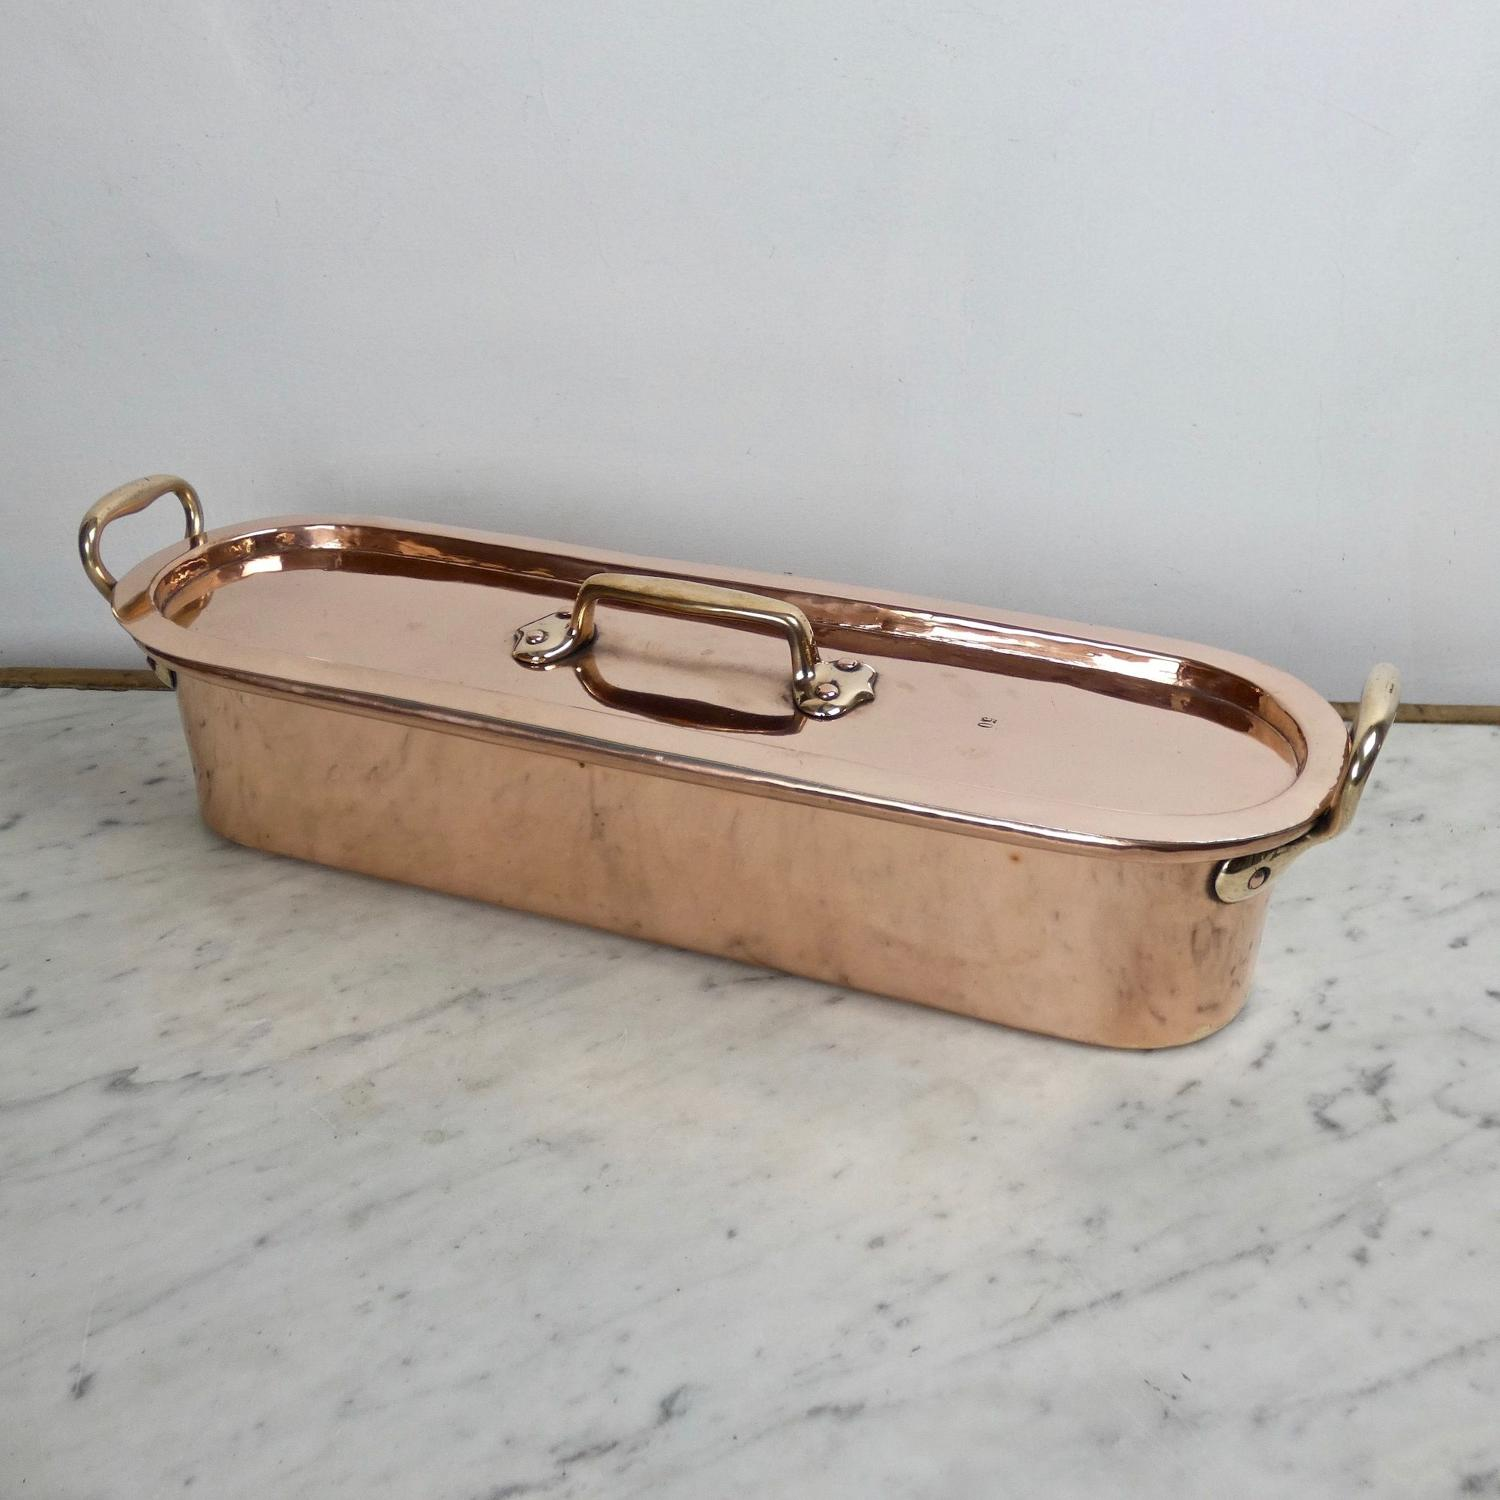 Small, French copper salmon kettle